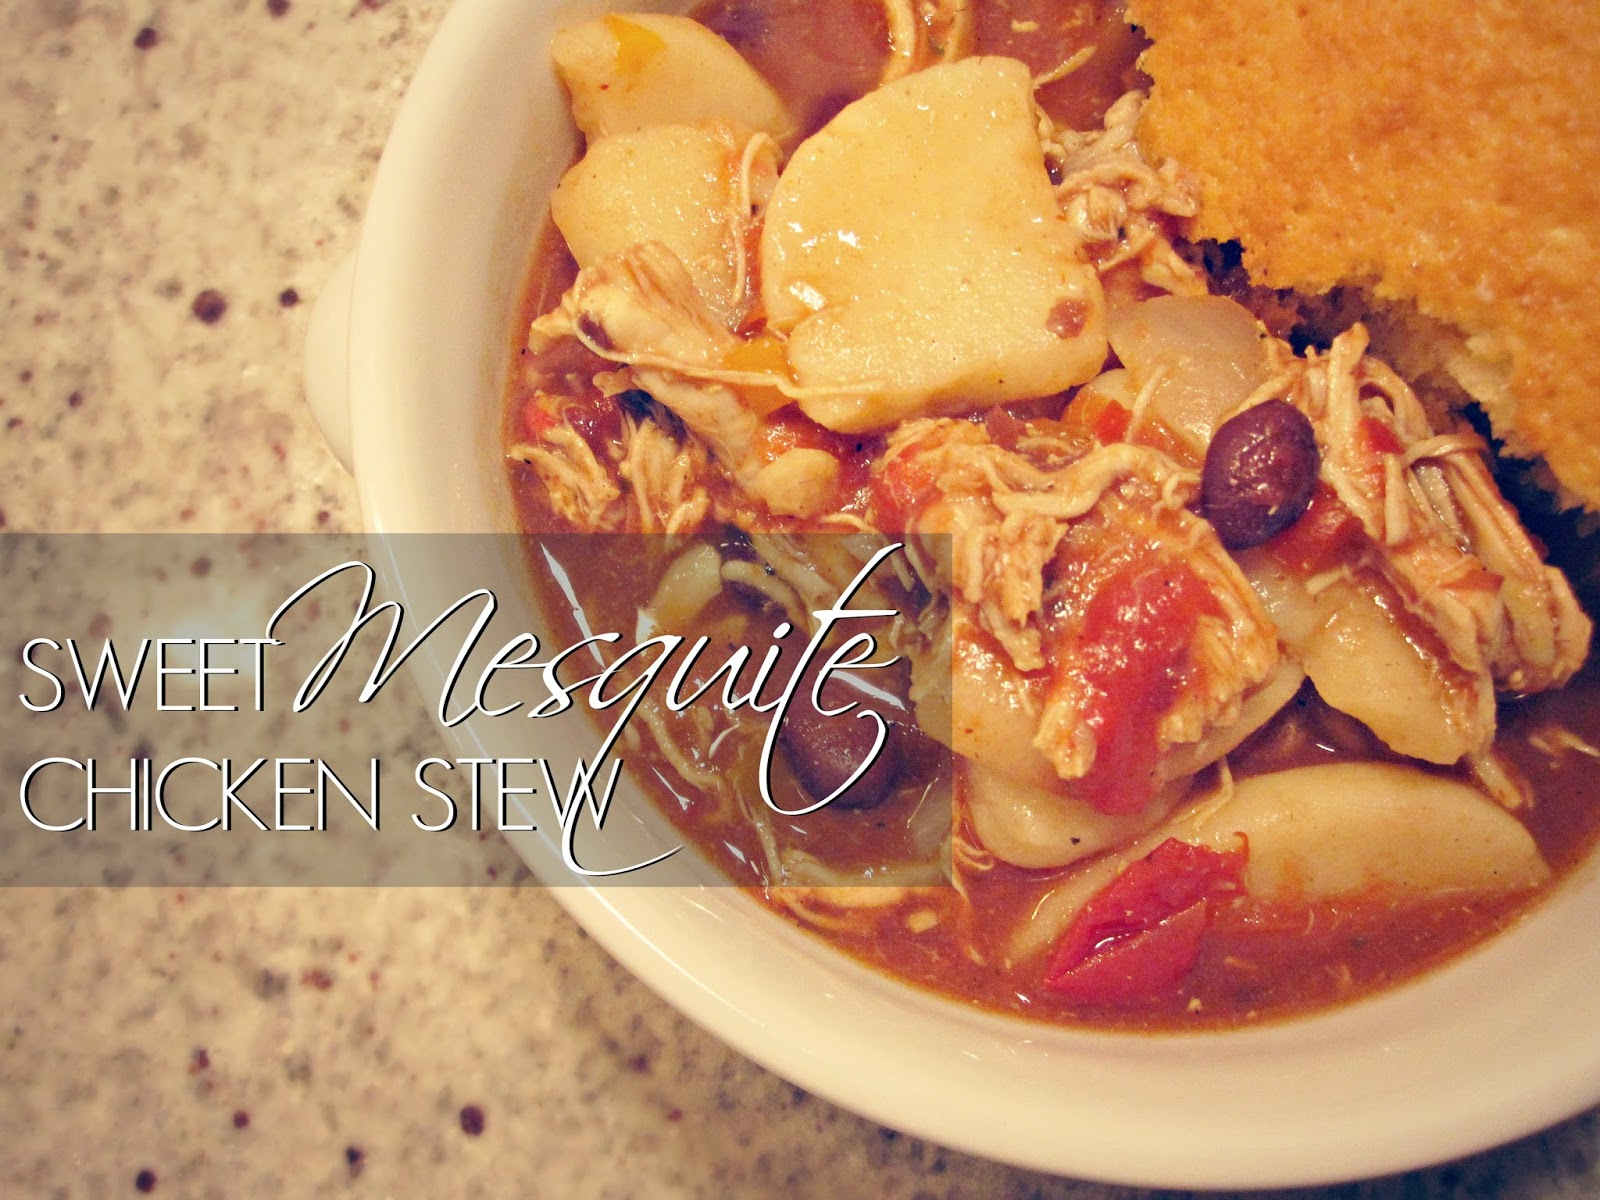 Sweet Mesquite Chicken Stew